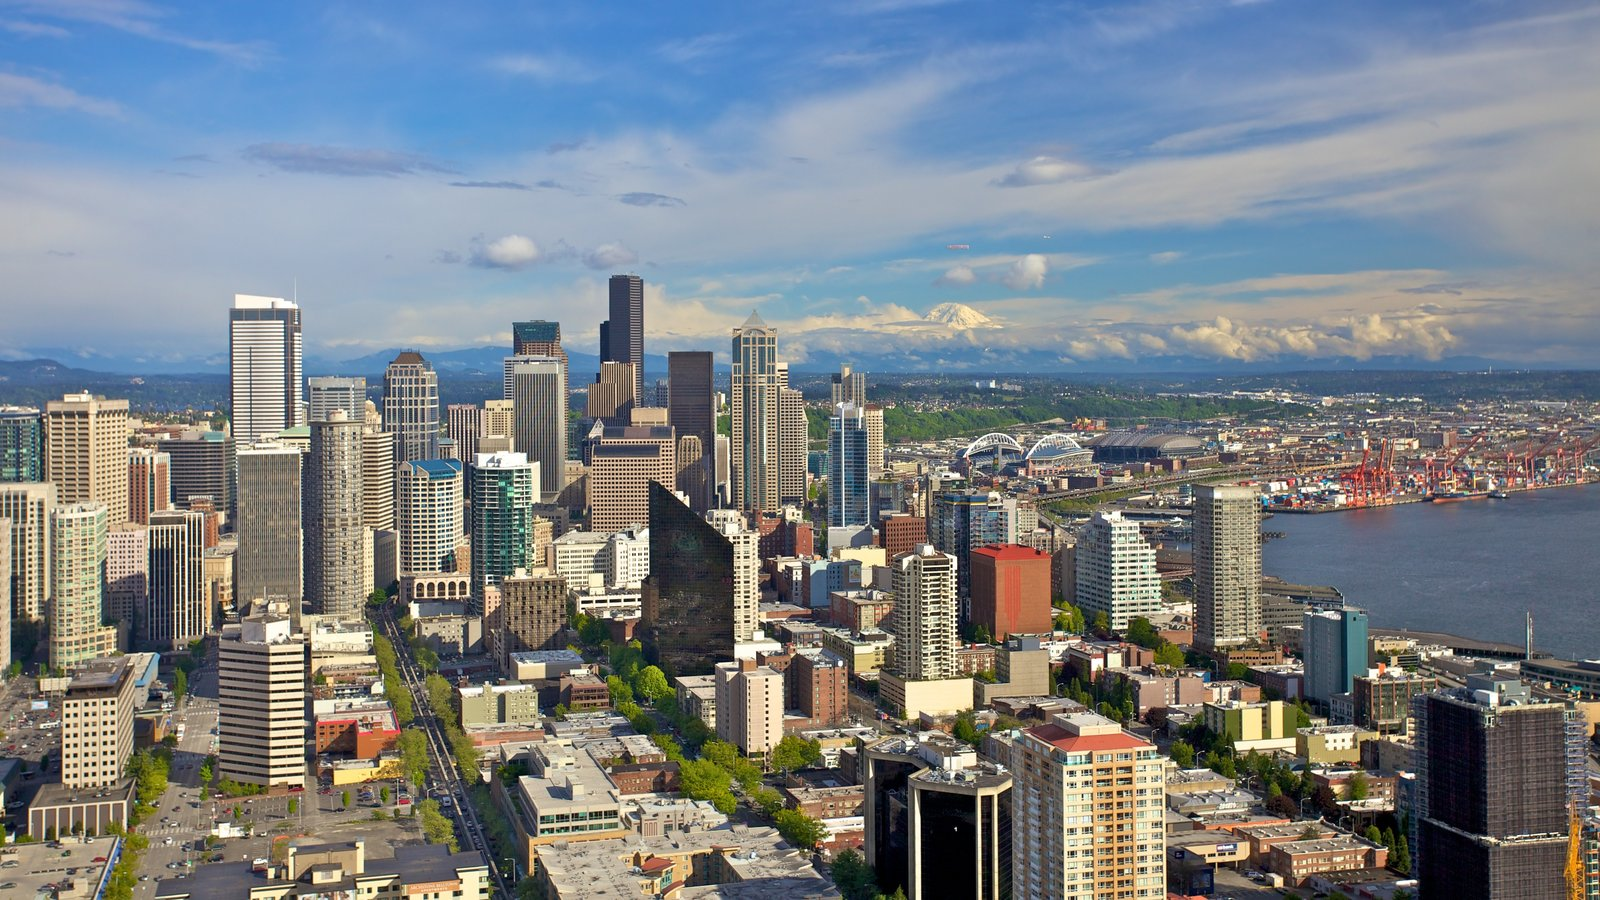 Downtown Seattle featuring skyline, central business district and a city